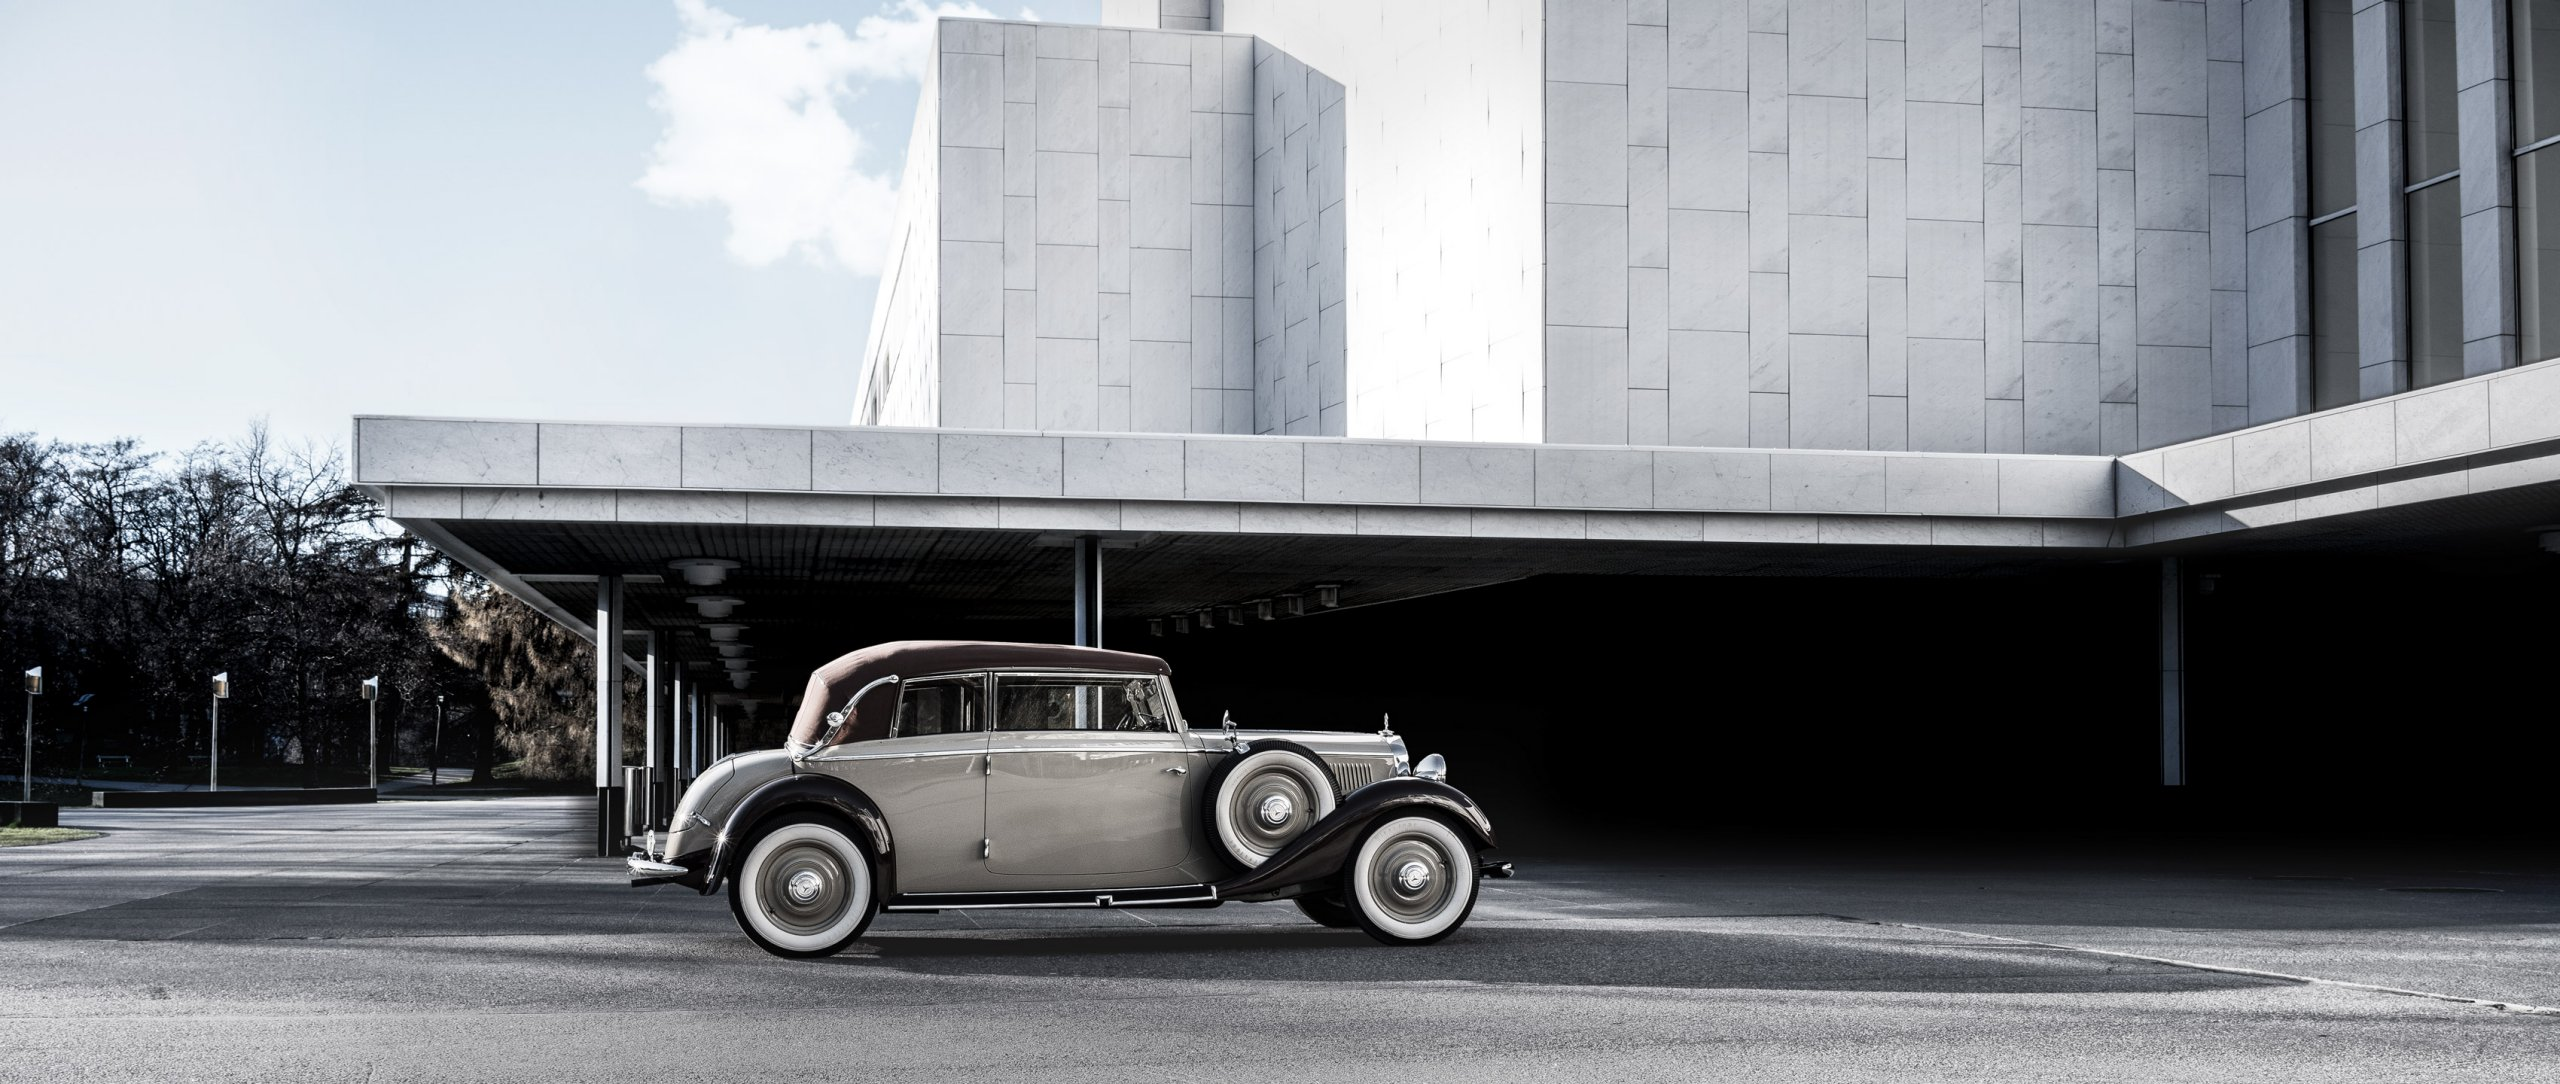 The Mercedes-Benz 200 lang Cabriolet B in front of the Finnlandia hall